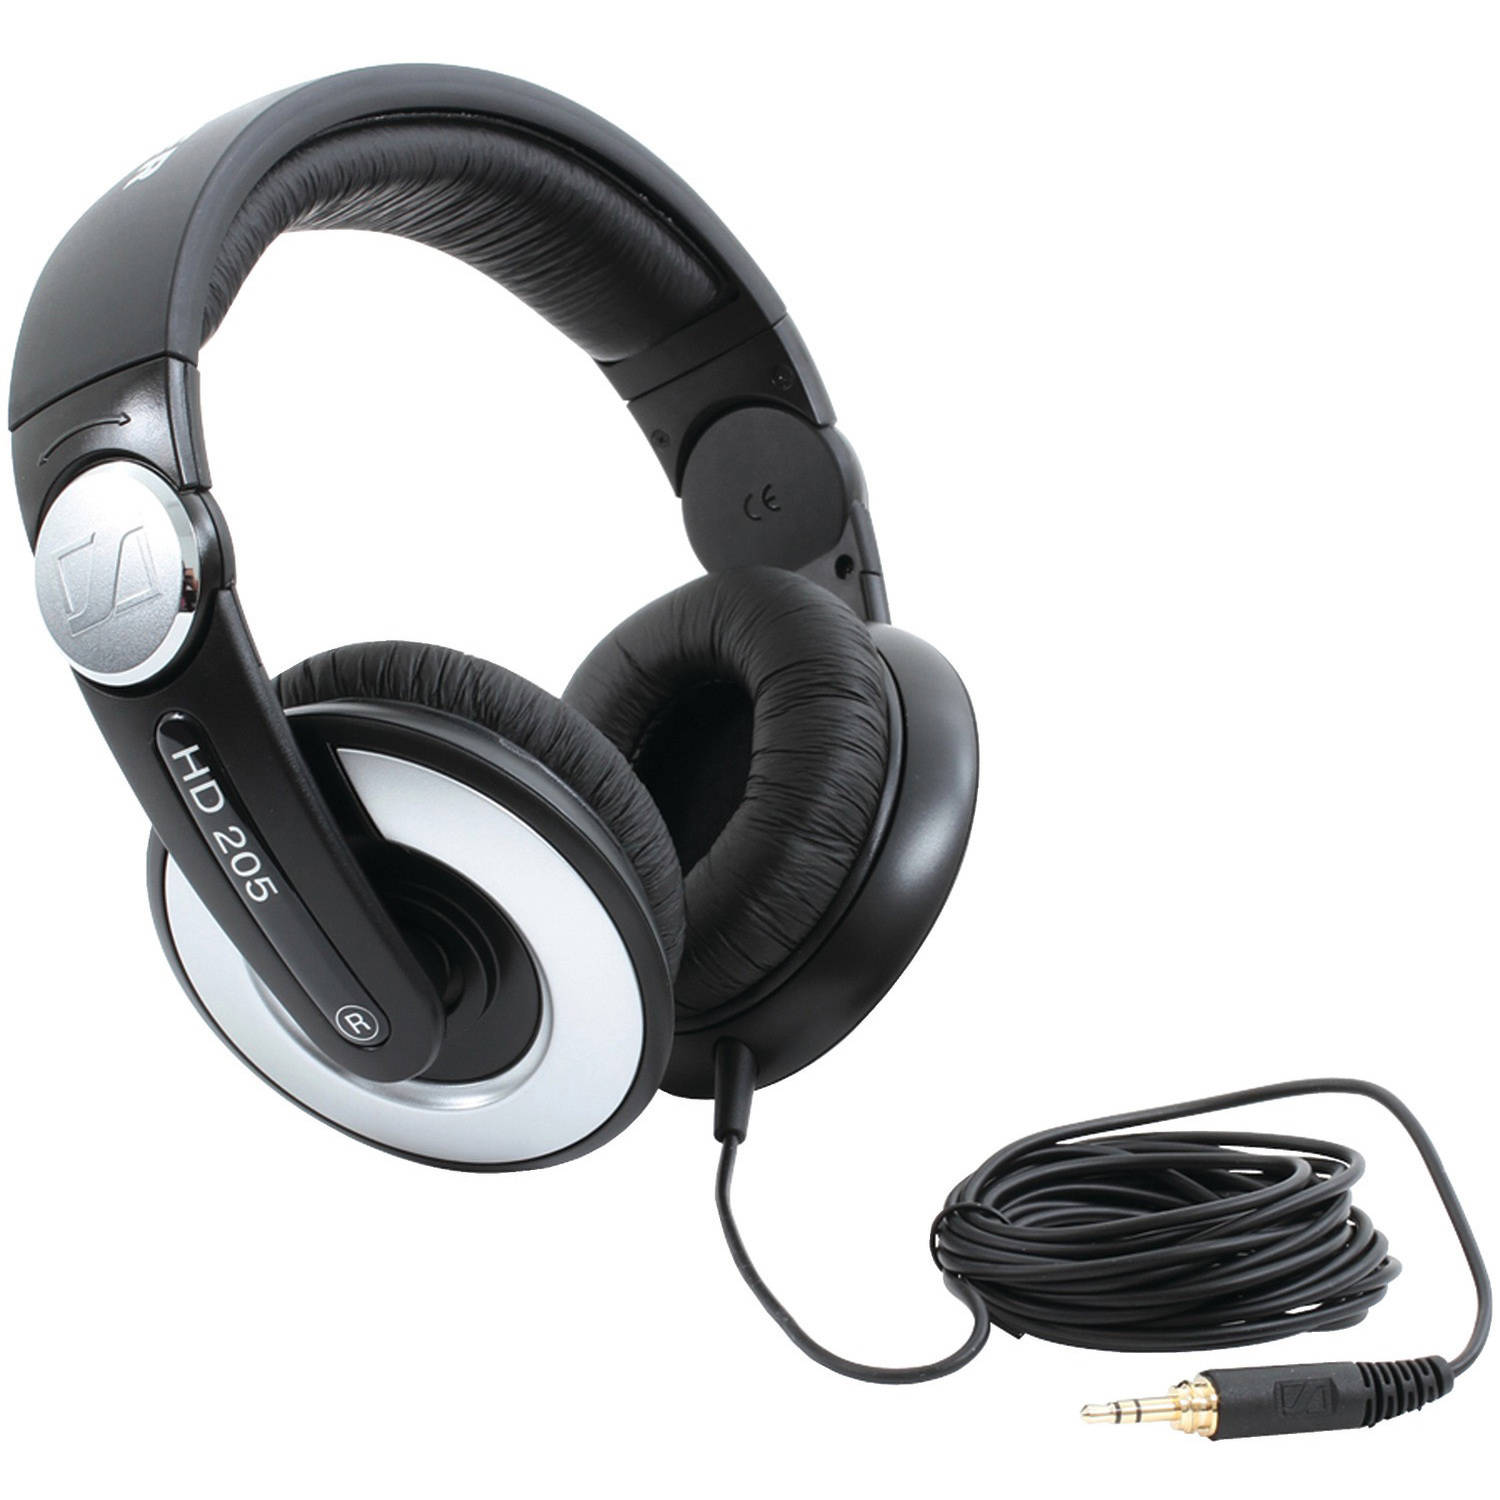 Sennheiser 504292 HD 205 II Headphones by Sennheiser